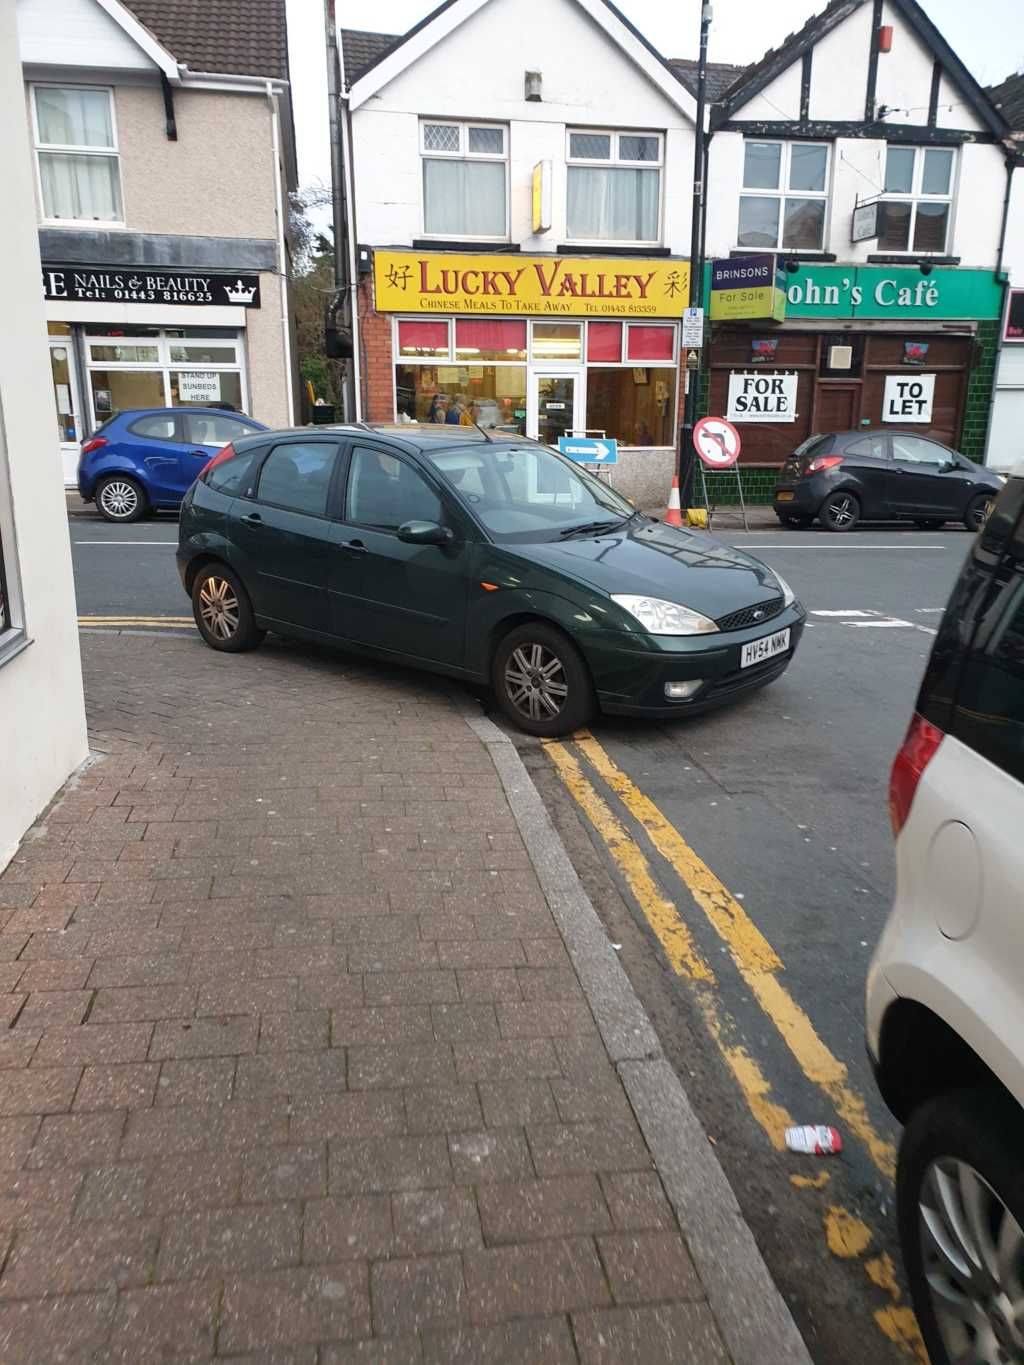 HV54 NMK is an Inconsiderate Parker